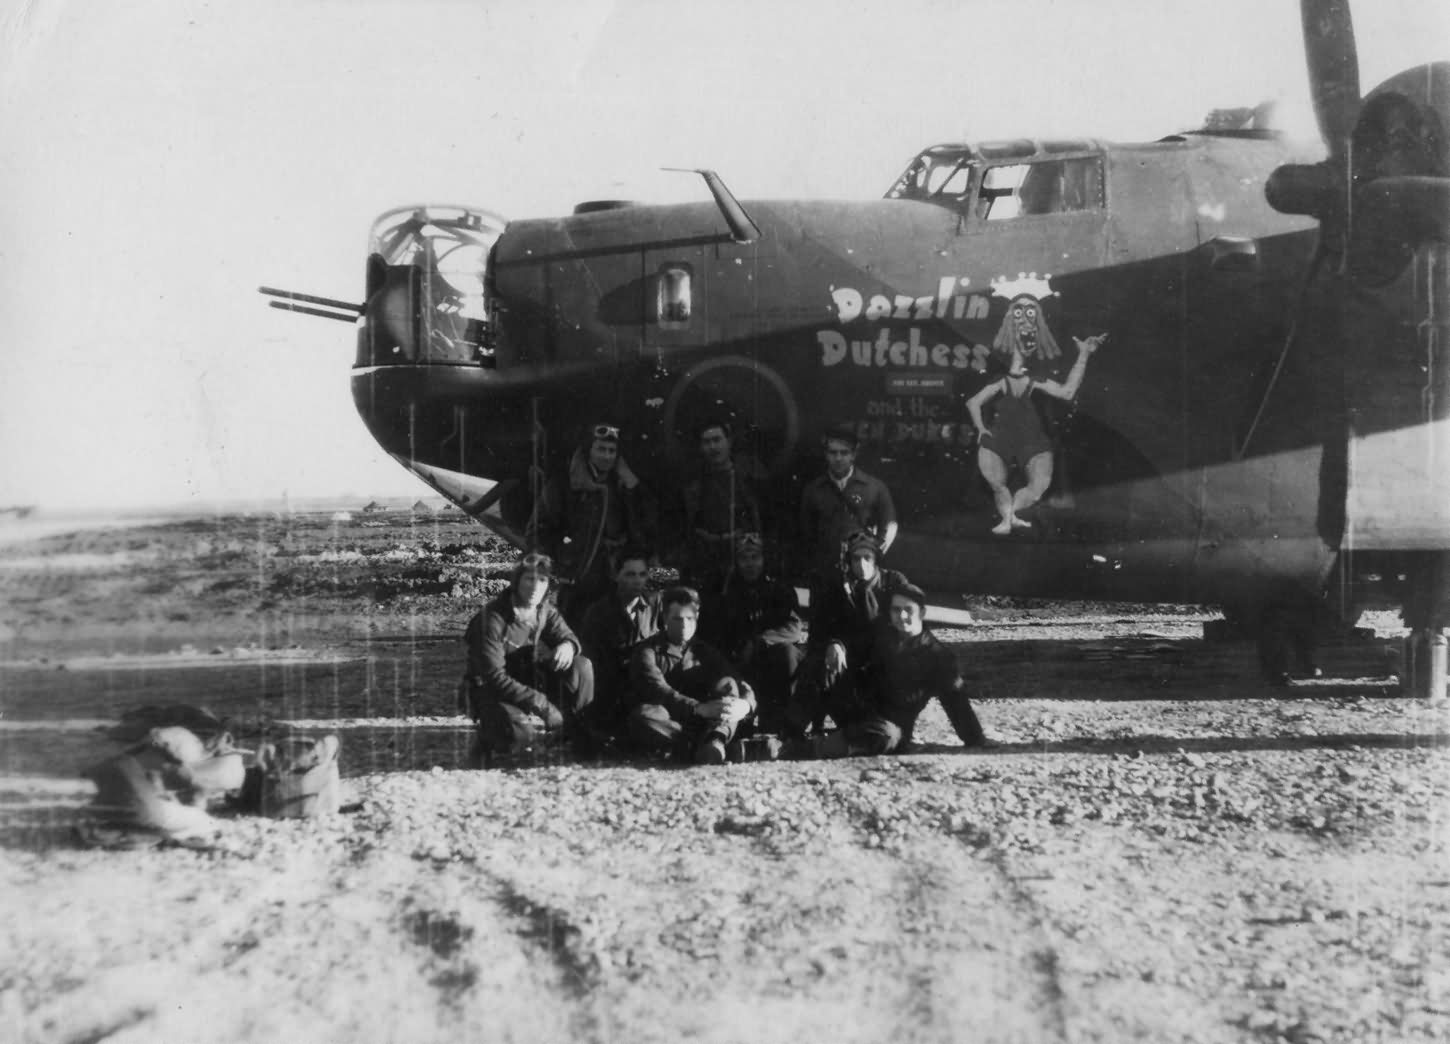 B-24 Liberator 455th Bomb Group Dazzlin Dutchess and the ten dukes 42-64500